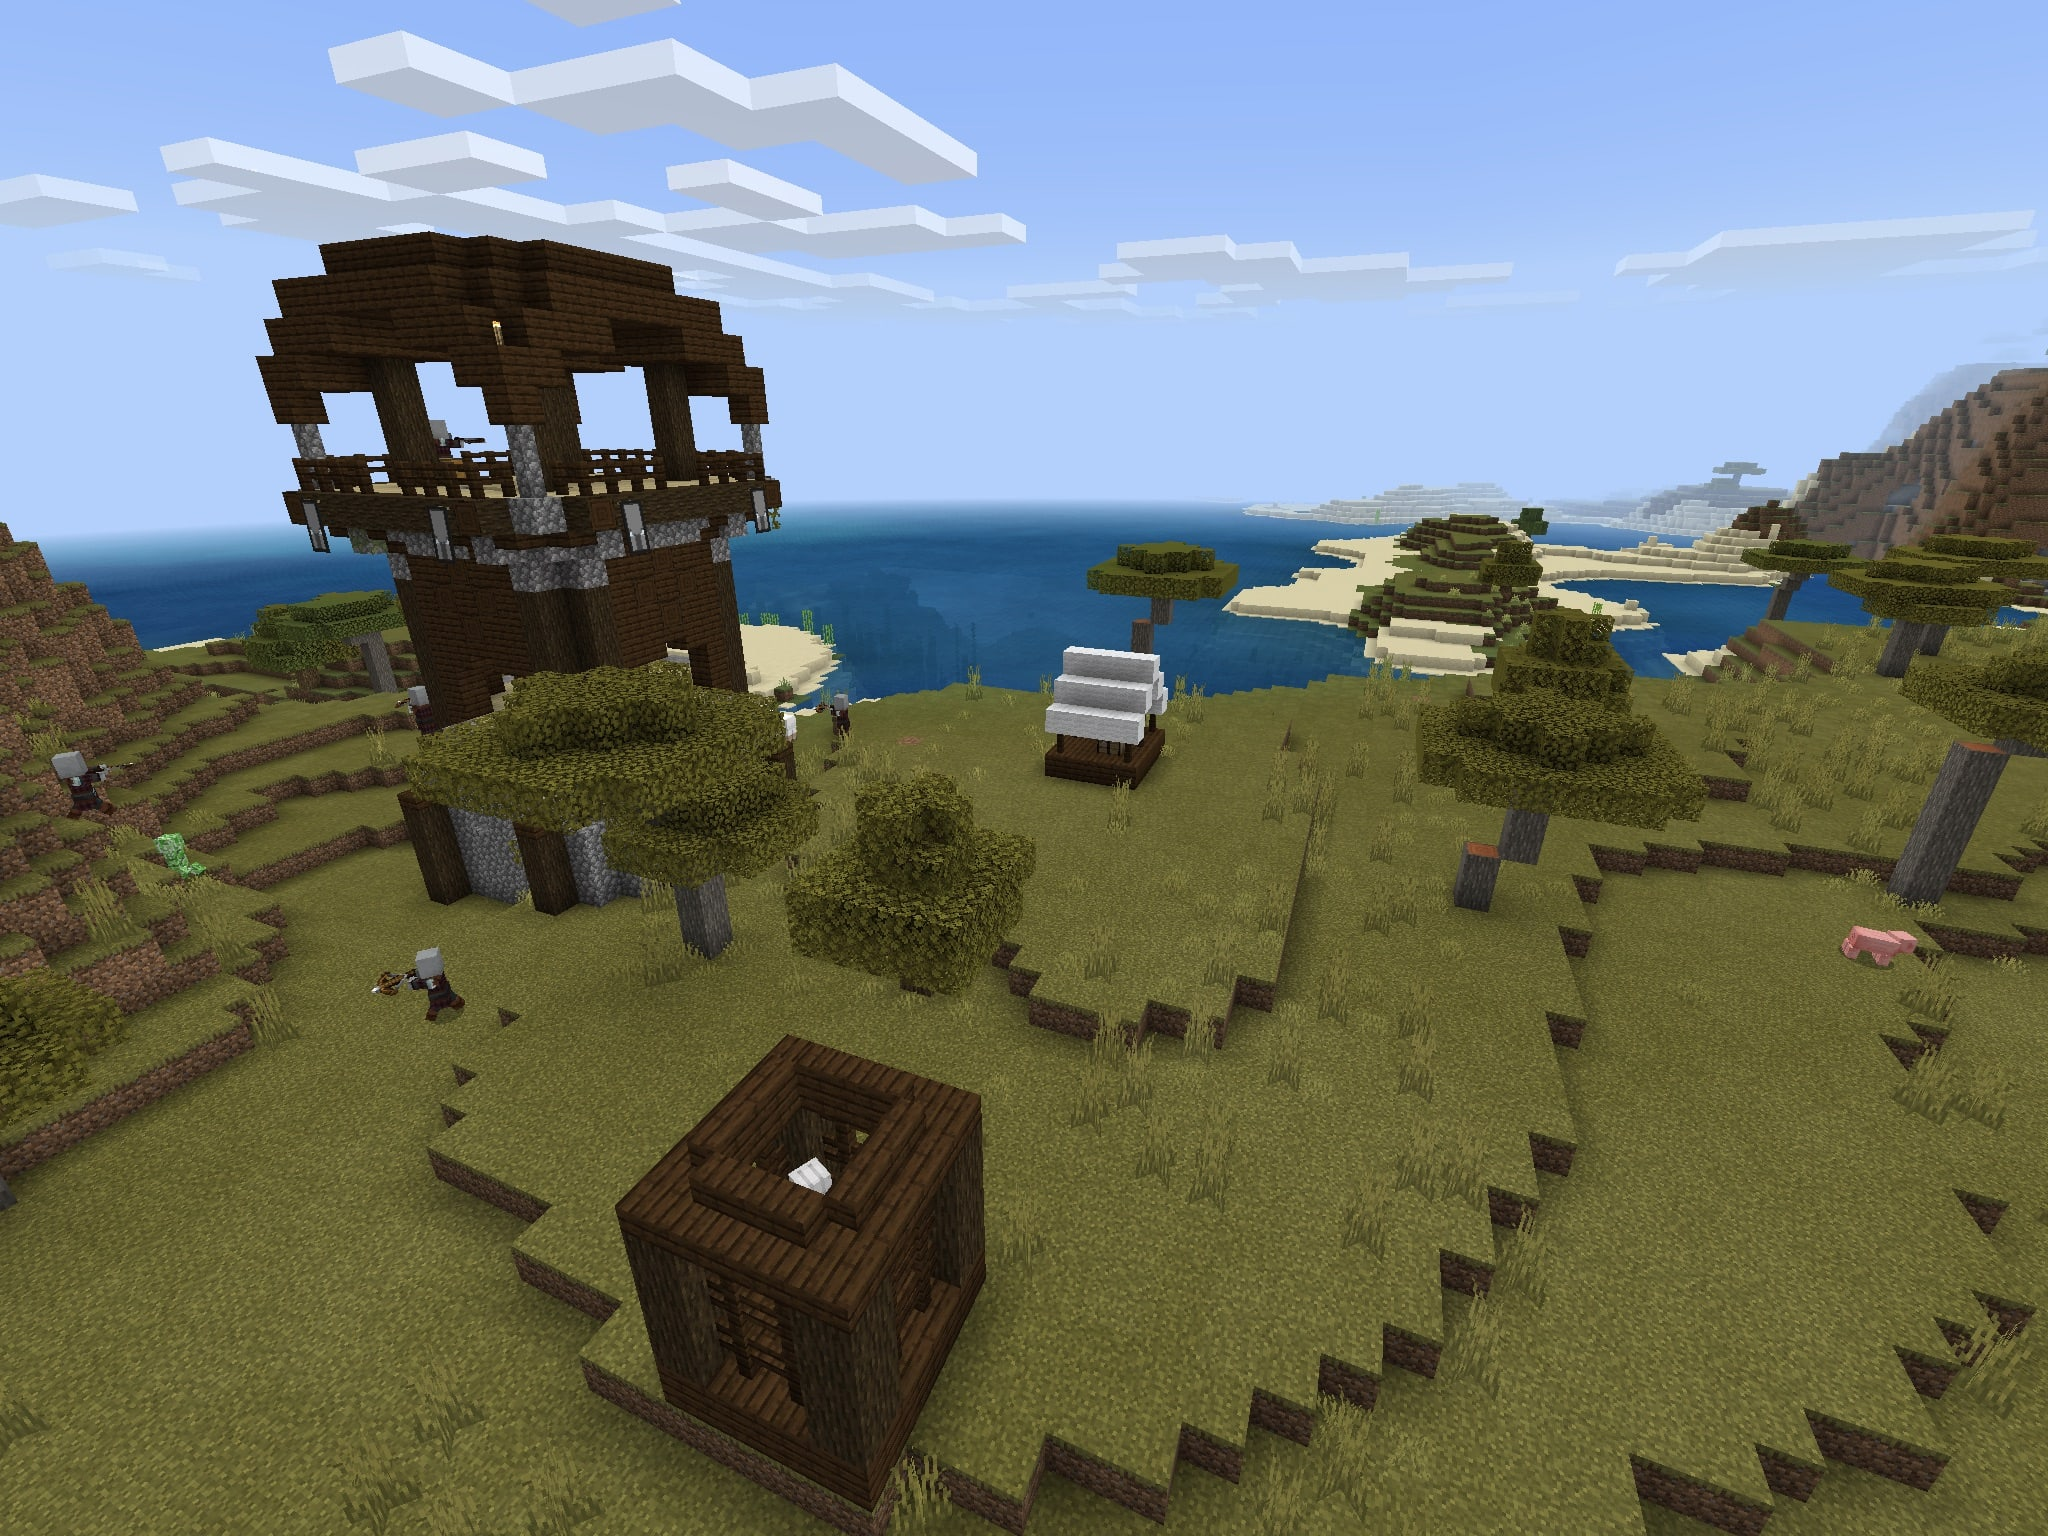 Minecraft PE Pillager Outpost Seeds/Bedrock Edition Pillager